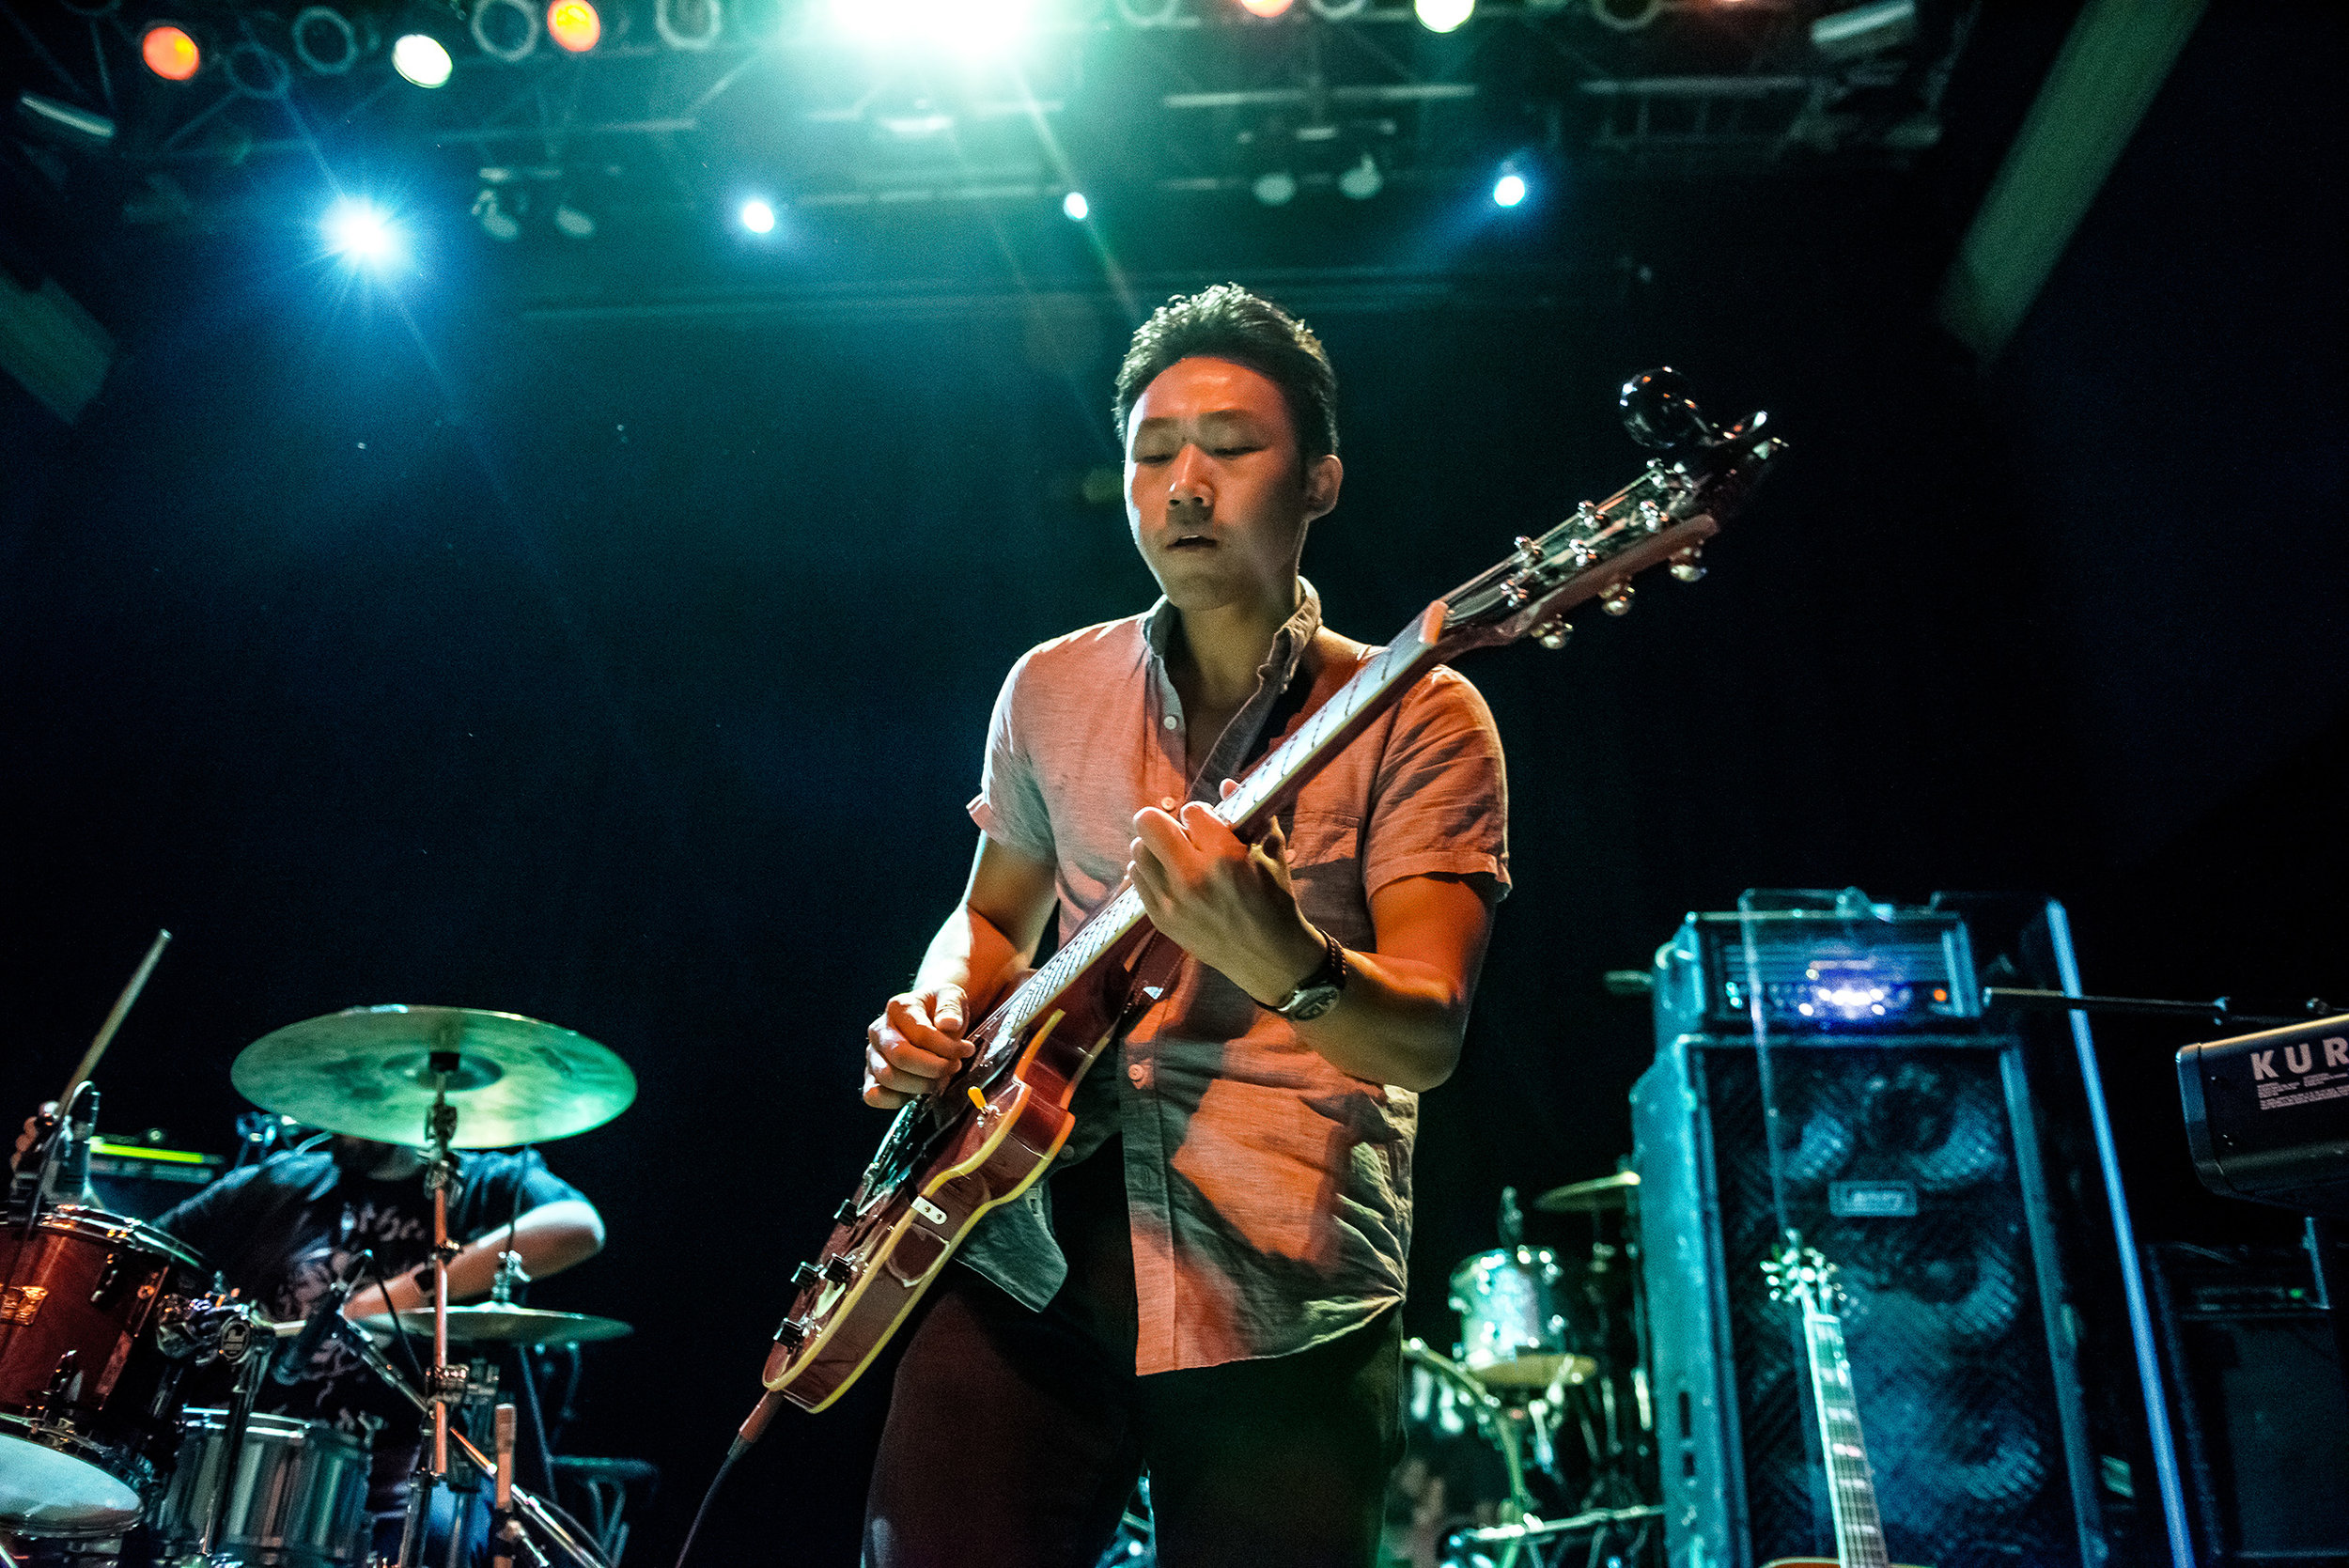 Skyline Hotel - 930 Club - Jon Lee 2.jpg